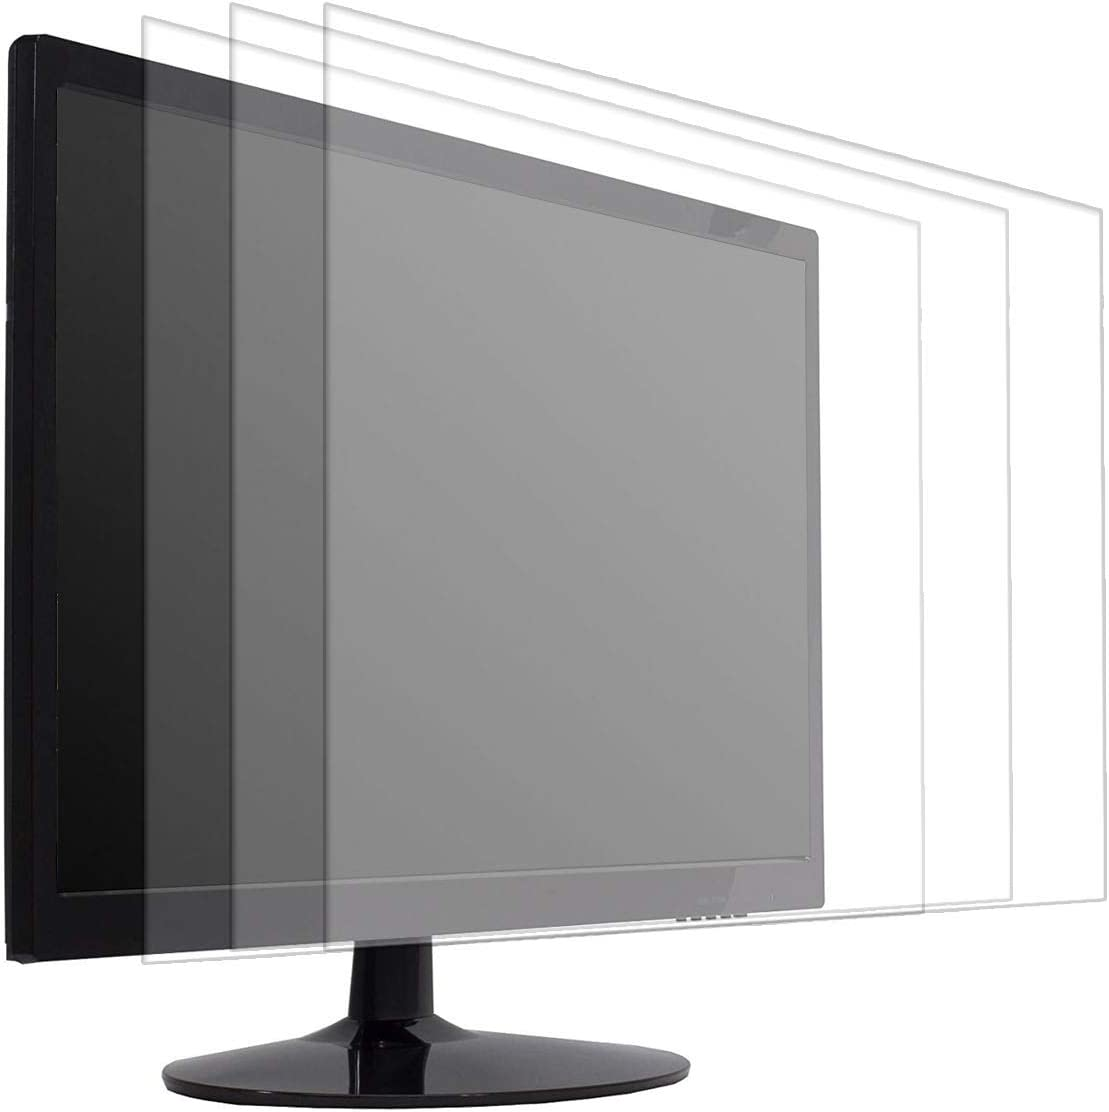 20 Inch Anti Glare Screen Protector Fit Diagonal 20 Inch Desktop with 16:9 Widescreen Monitor, Reduce Glare Reflection and Eyes Strain, Fingerprint-Resist (17 7/16 x 9 13/16 Inch)-3Pcs